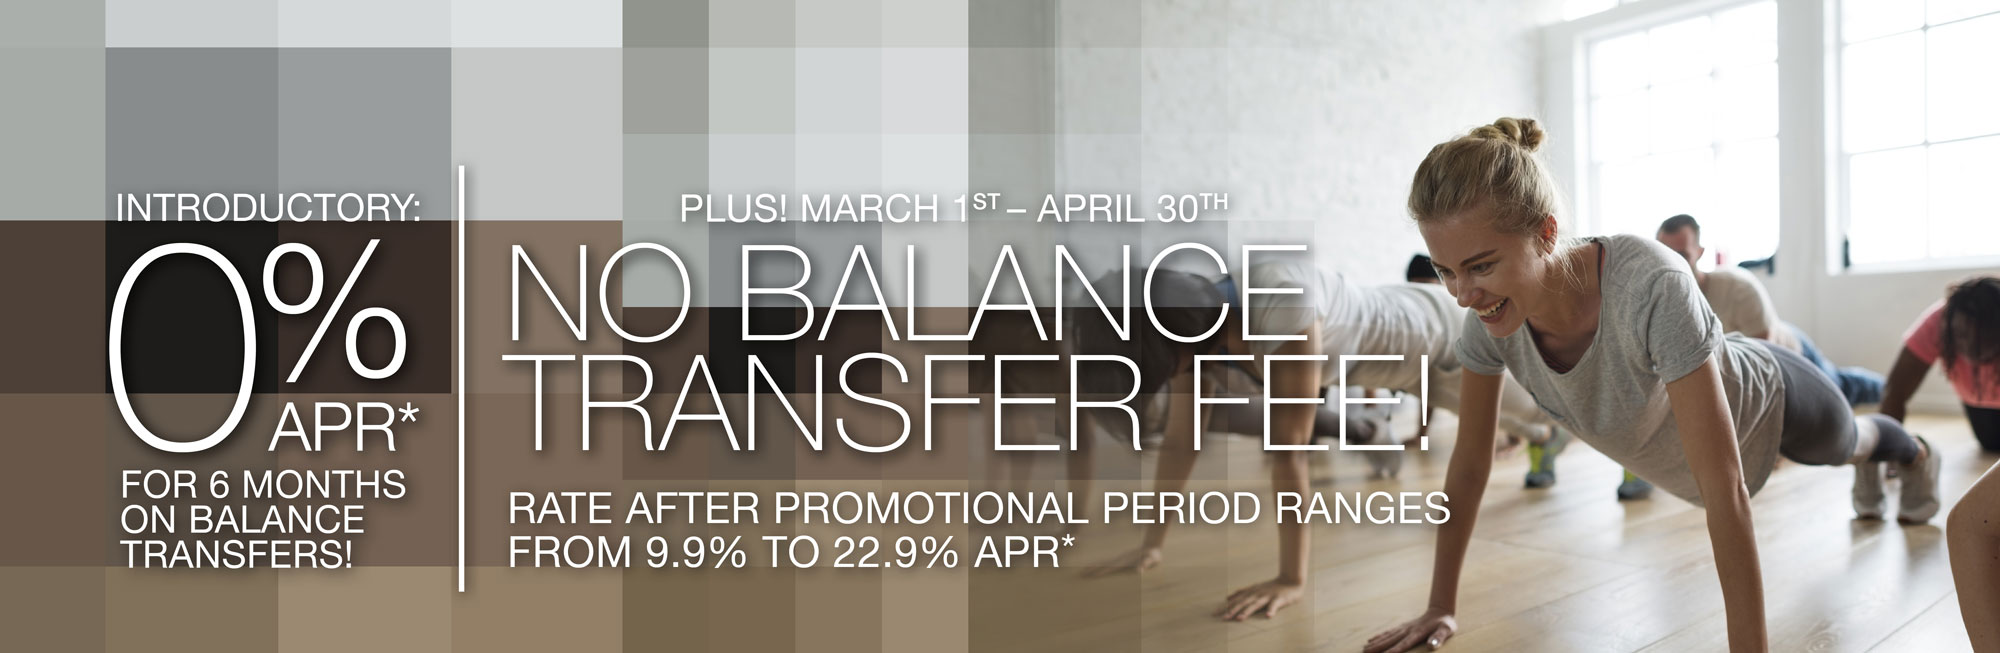 No Balance Transfer Fee with 0% Offer!